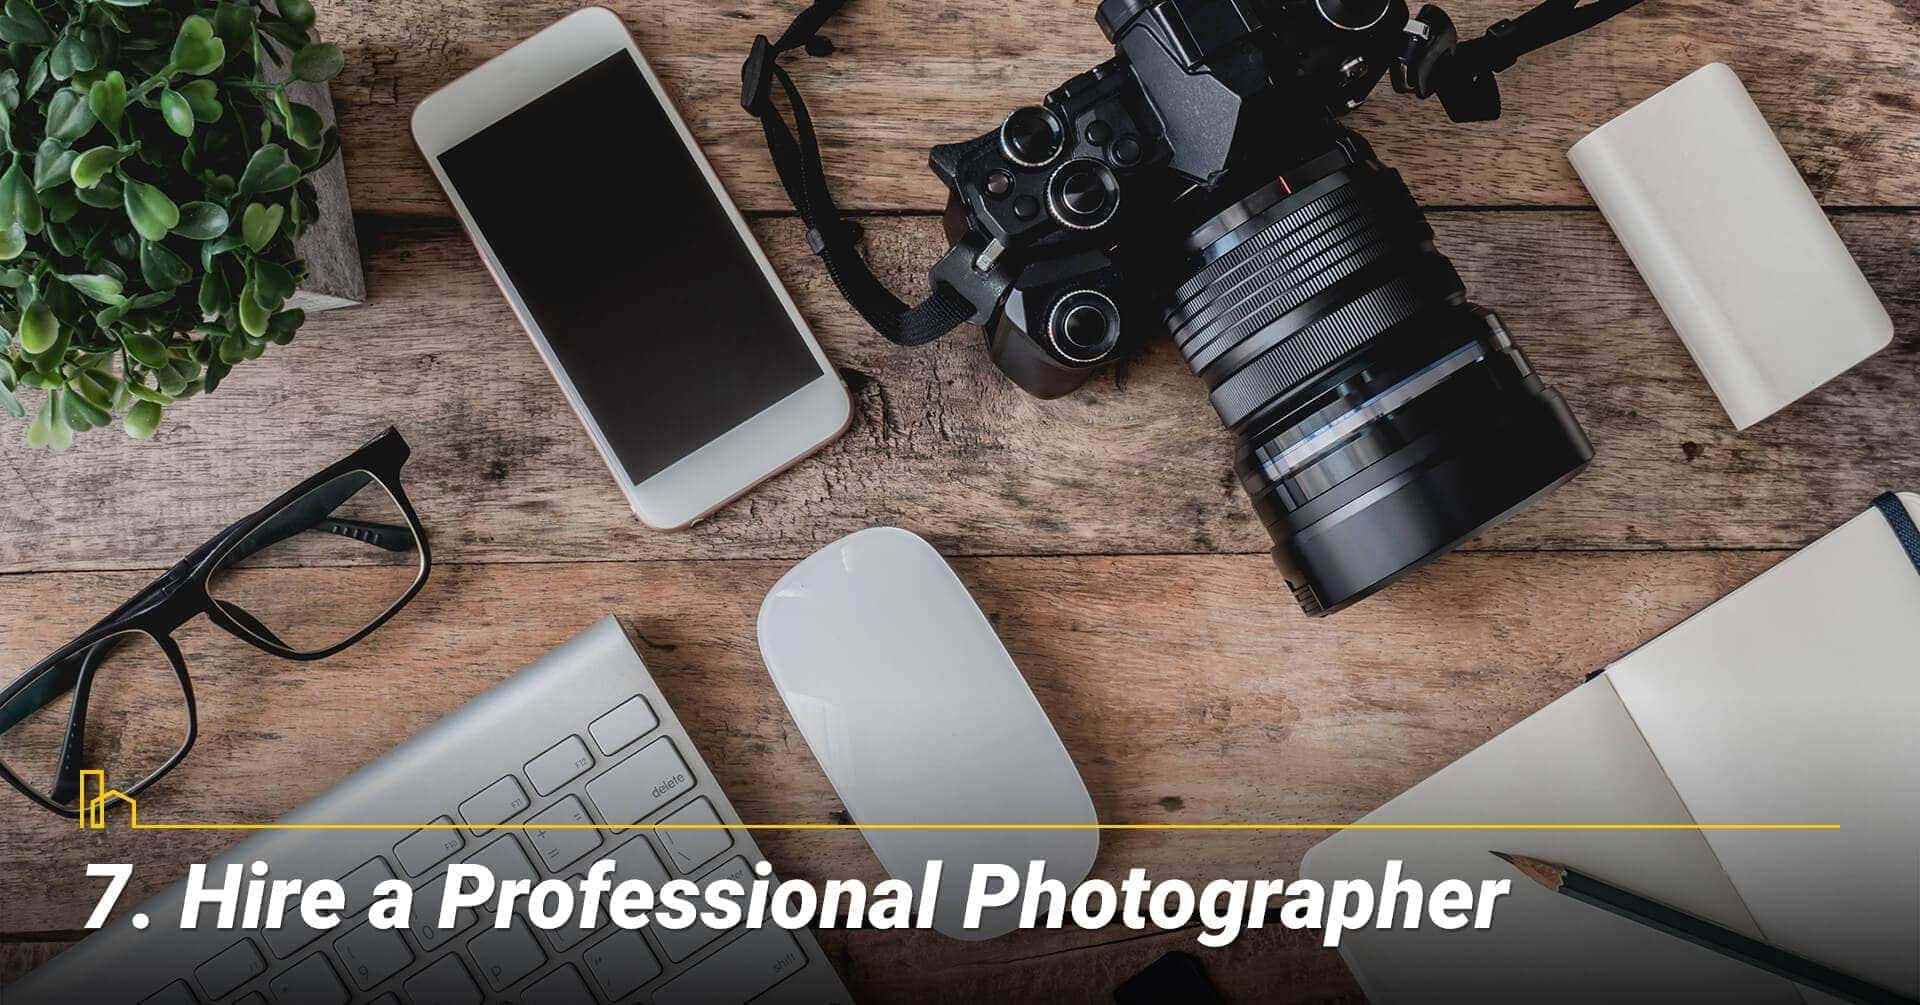 Hire a Professional Photographer